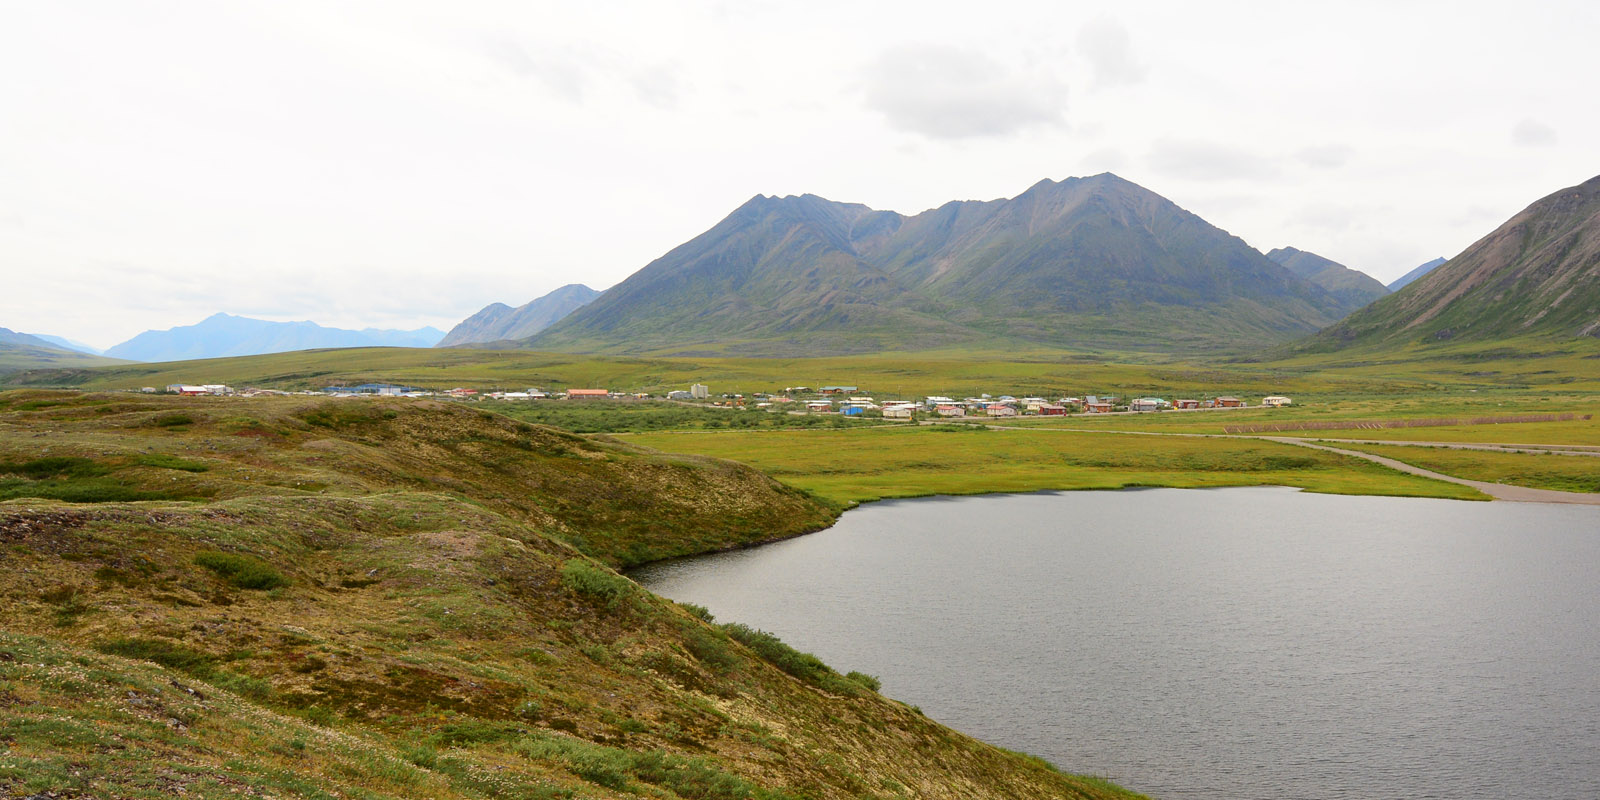 Anaktuvuk Pass, a small village in the Brooks Range mountains of Alaska